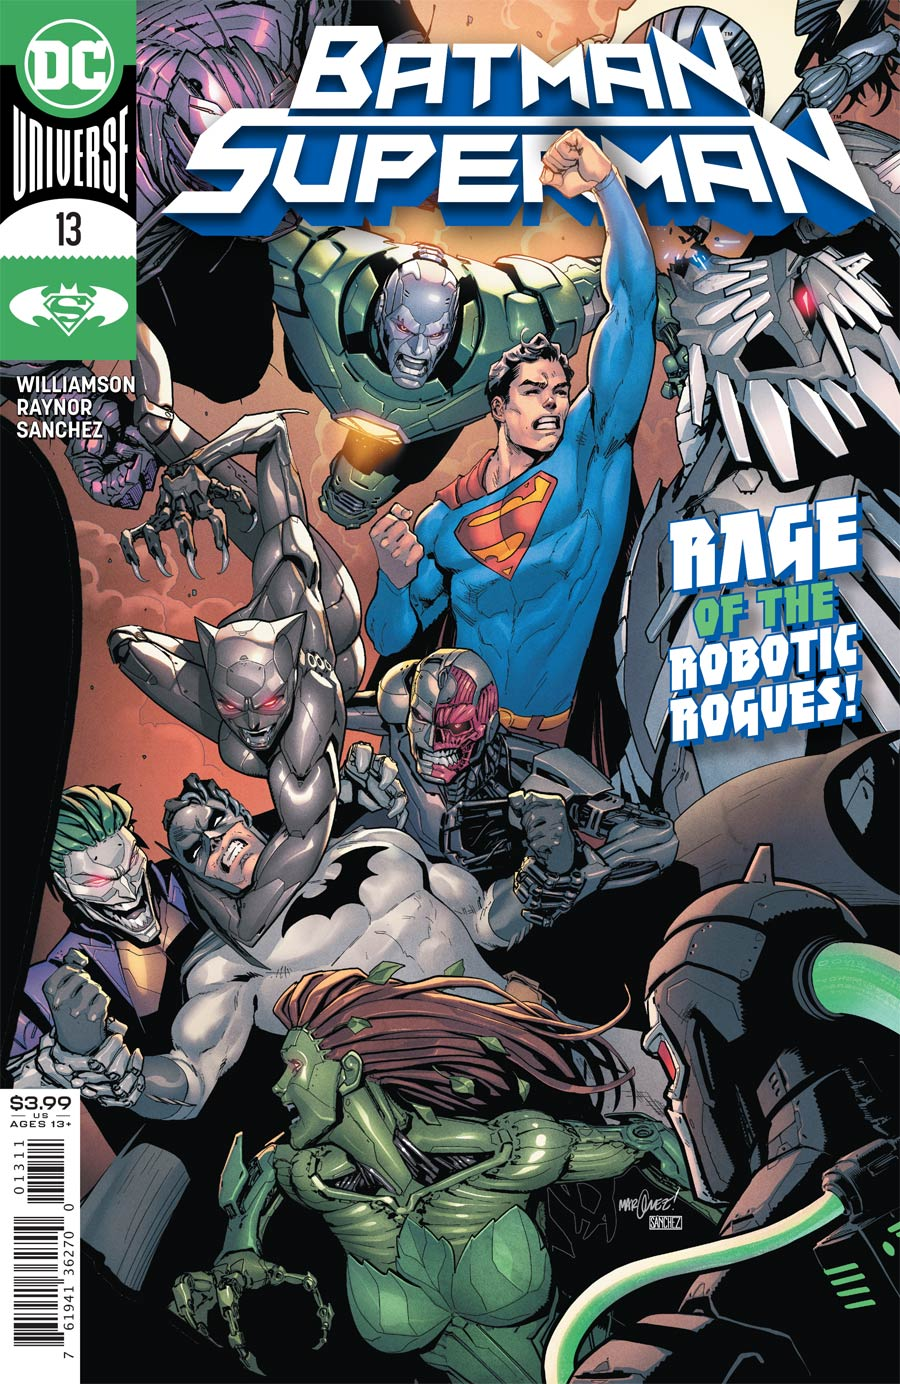 Batman Superman Vol 2 #13 Cover A Regular David Marquez Cover